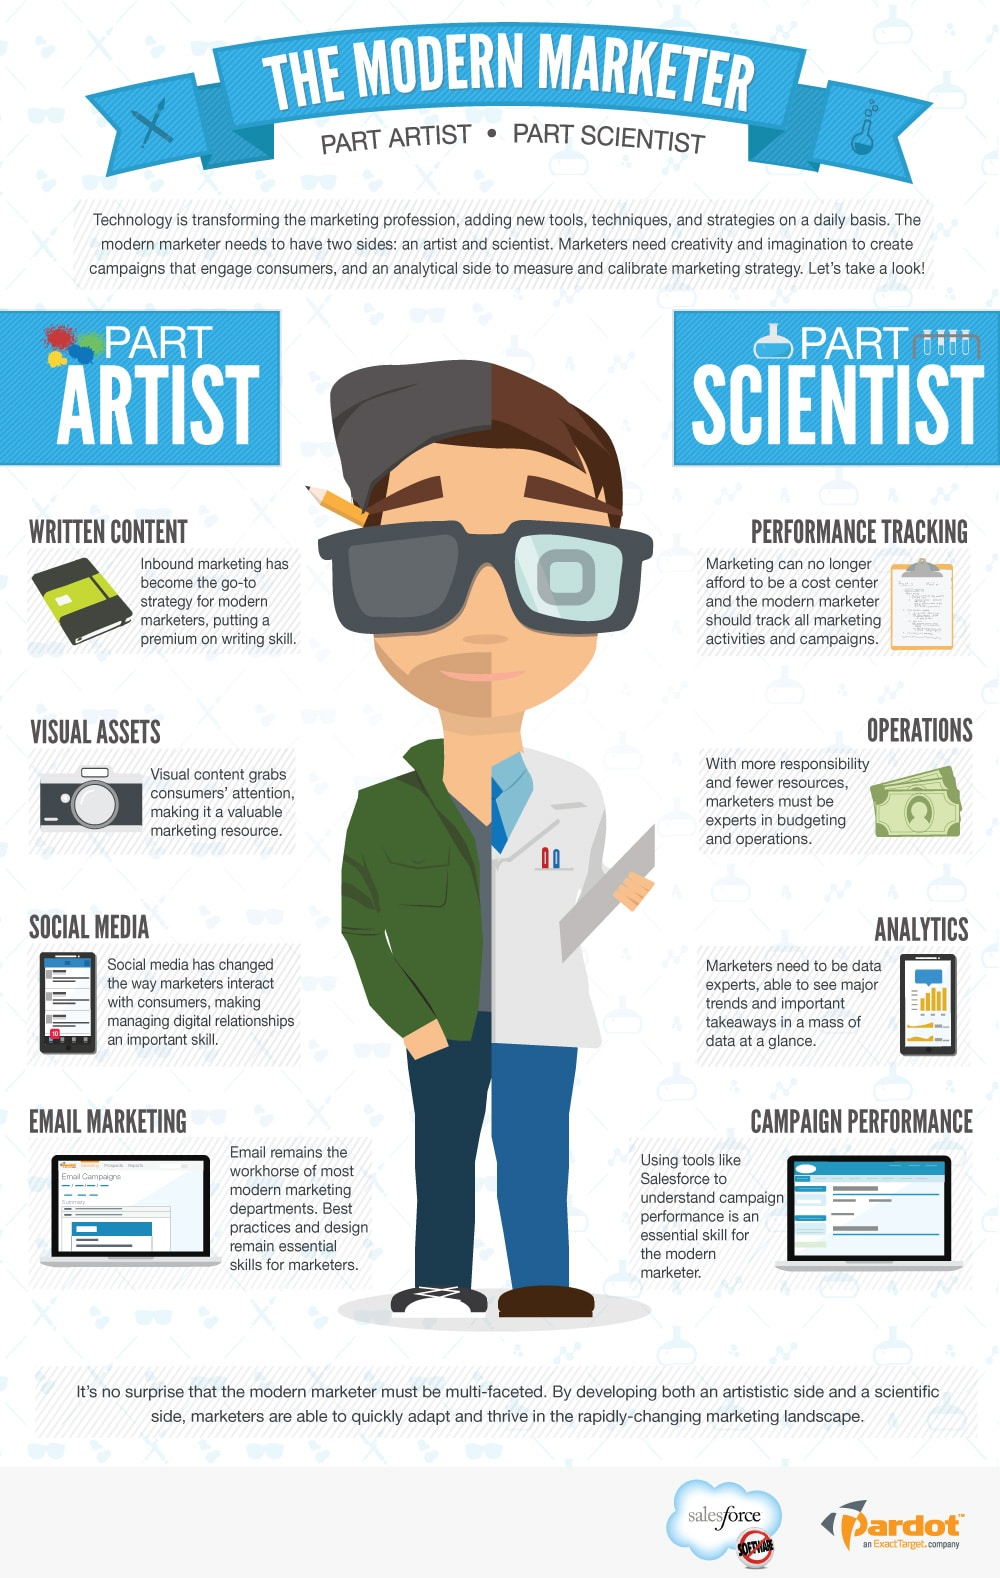 the modern marketer, mi-artiste mi-scientifique